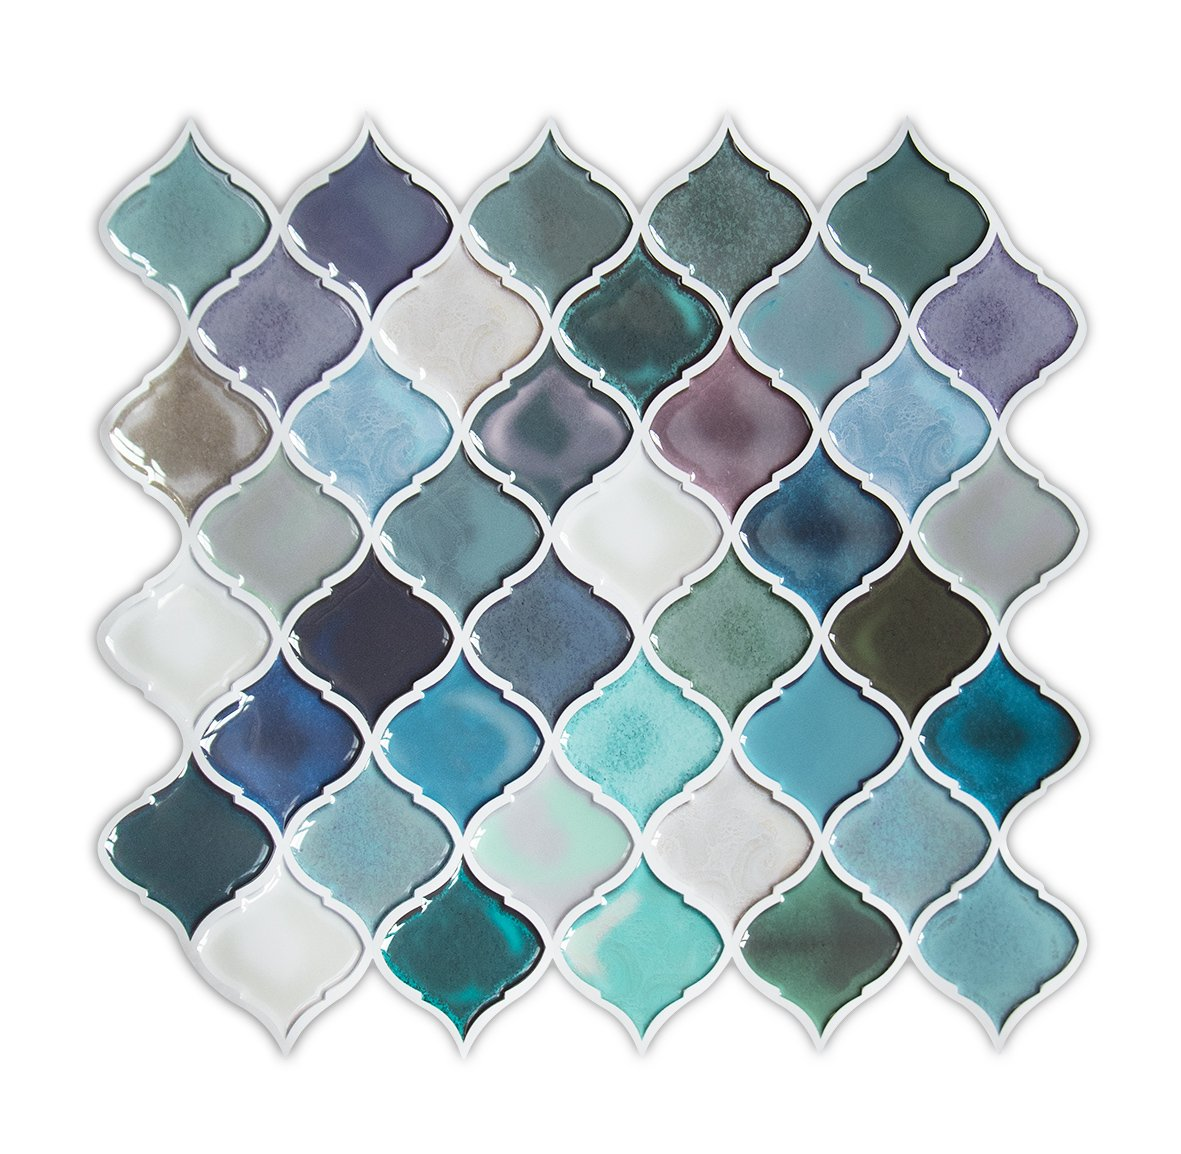 HUE DECORATION Arabesque Peel and Stick Tile Backsplash, Anti Corrosion Self Stick Backsplash for Kitchen 10''x11.26'' Pack of 6 by HUE DECORATION